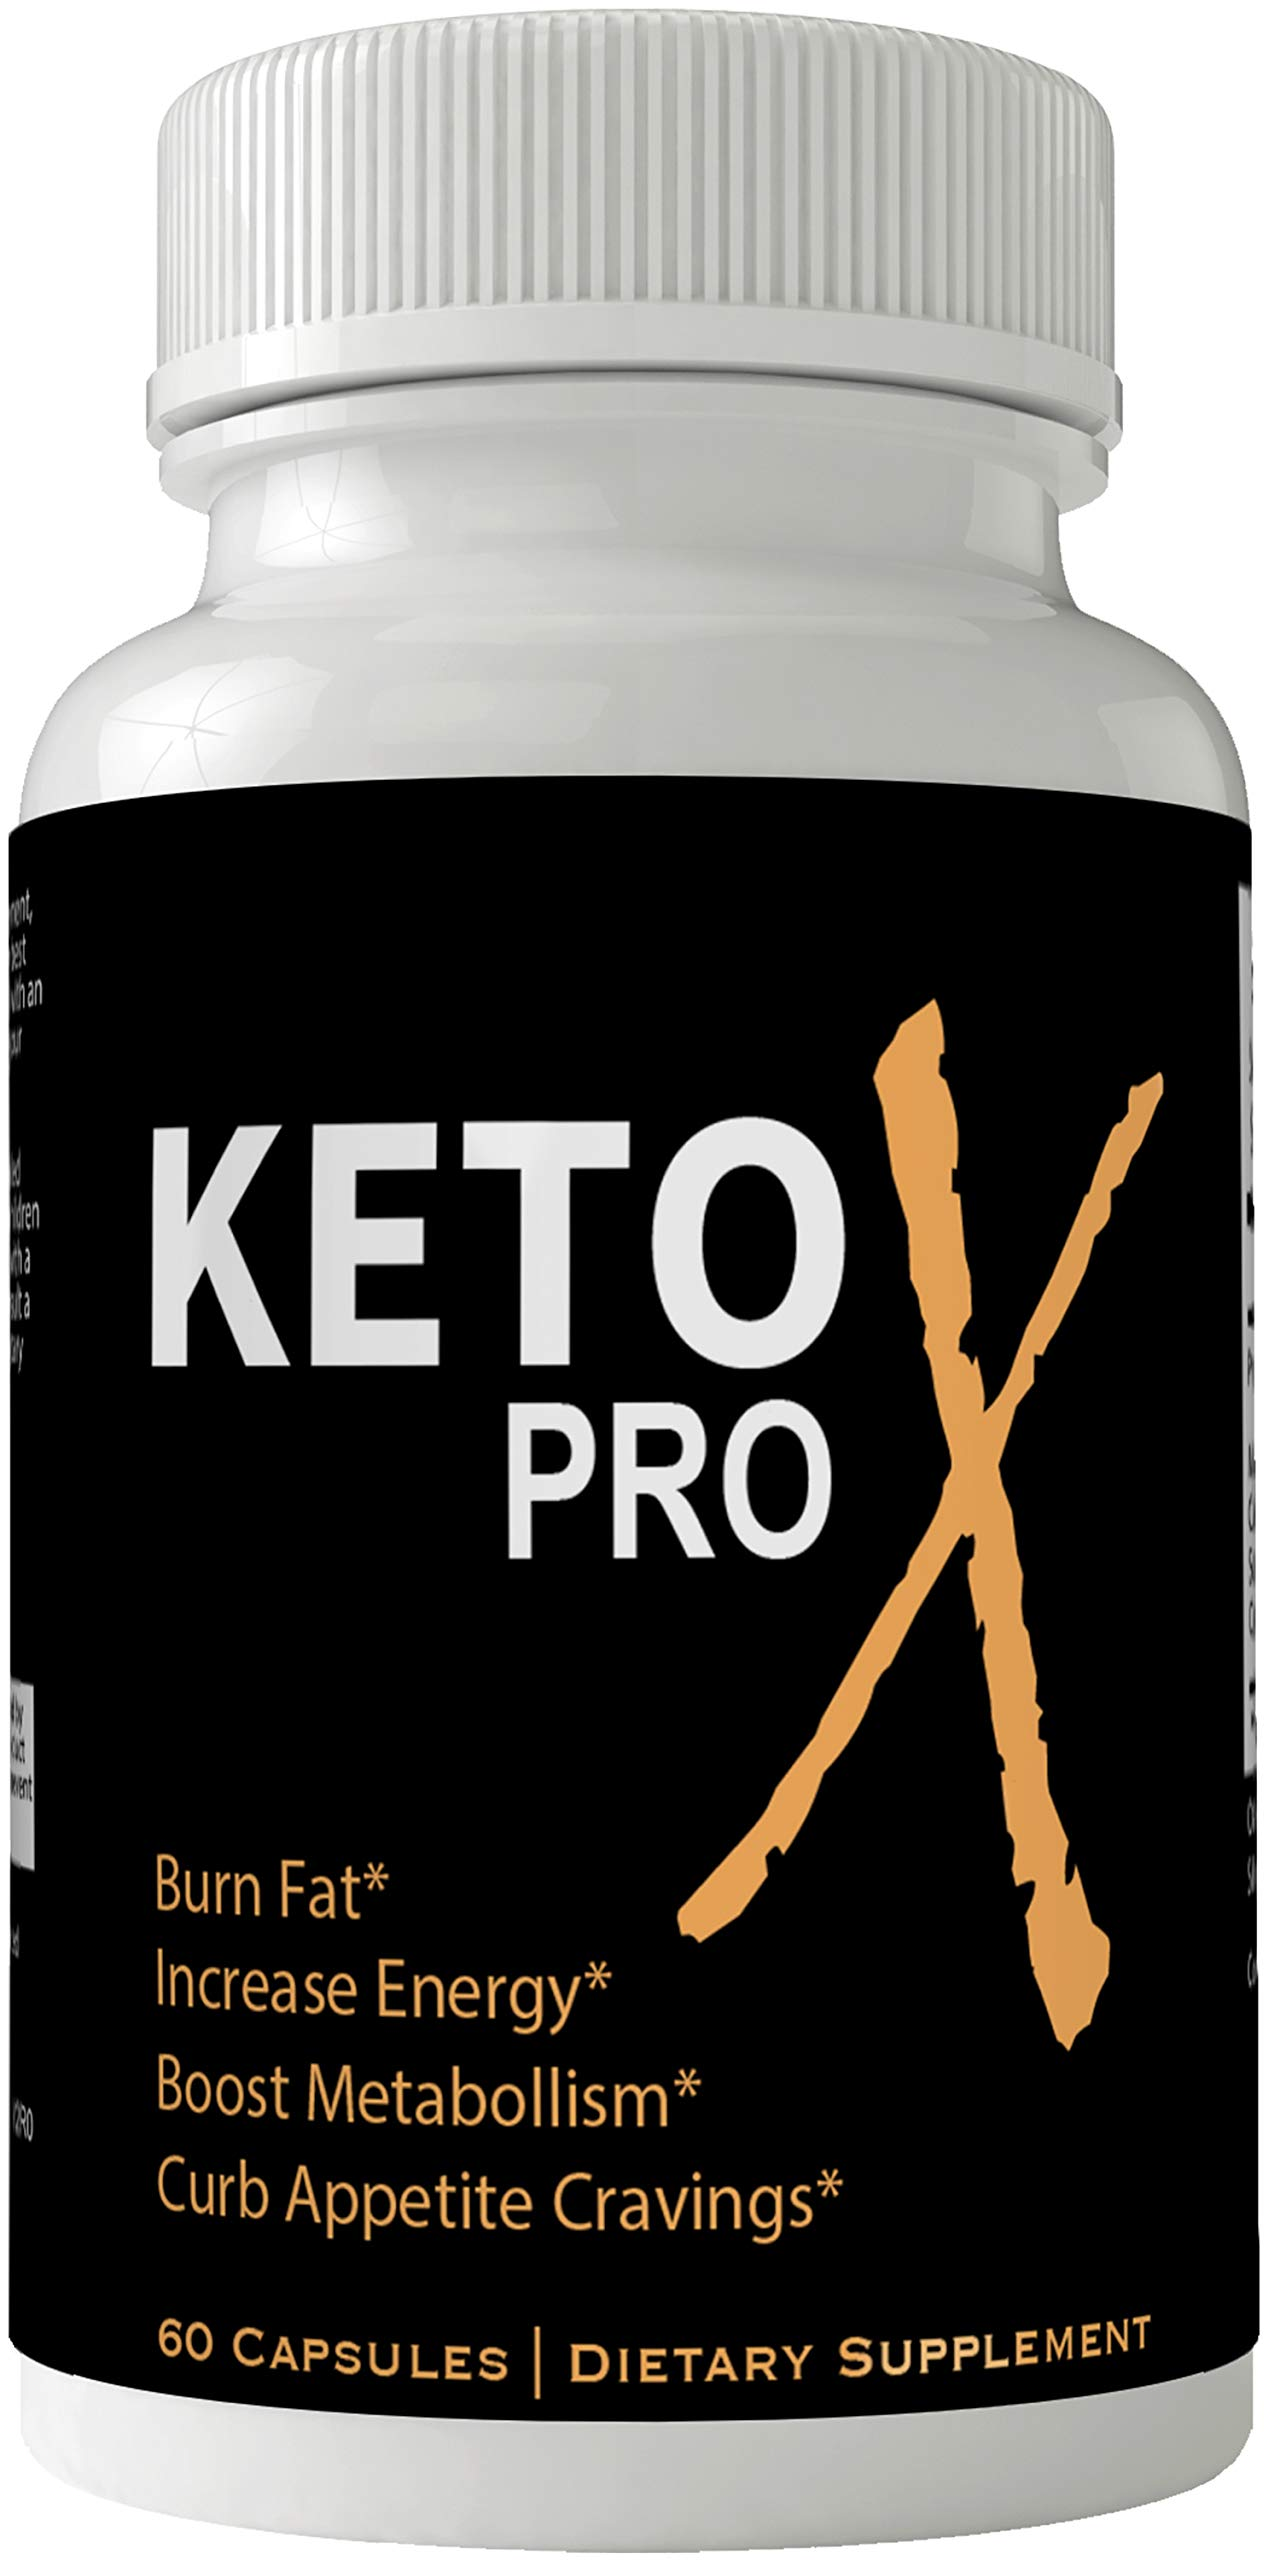 Keto Pro X Weight Loss Pills Advance Weight Loss Supplement Appetite Suppressant Natural Ketogenic 800 mg Formula with BHB Salts Ketone Diet Capsules to Boost Metabolism, Energy and Focus